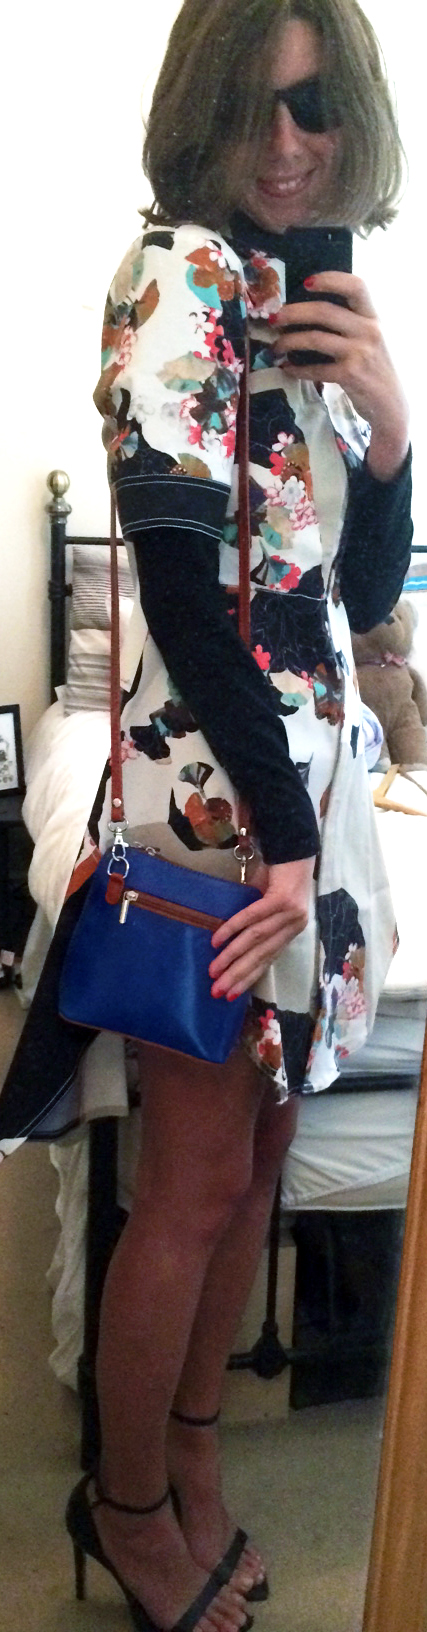 Phillip Lim for Target dress, ZARA Heels, $2 Black Turtleneck,  Blue   Crossbody Bag ,  Black Sunglasses